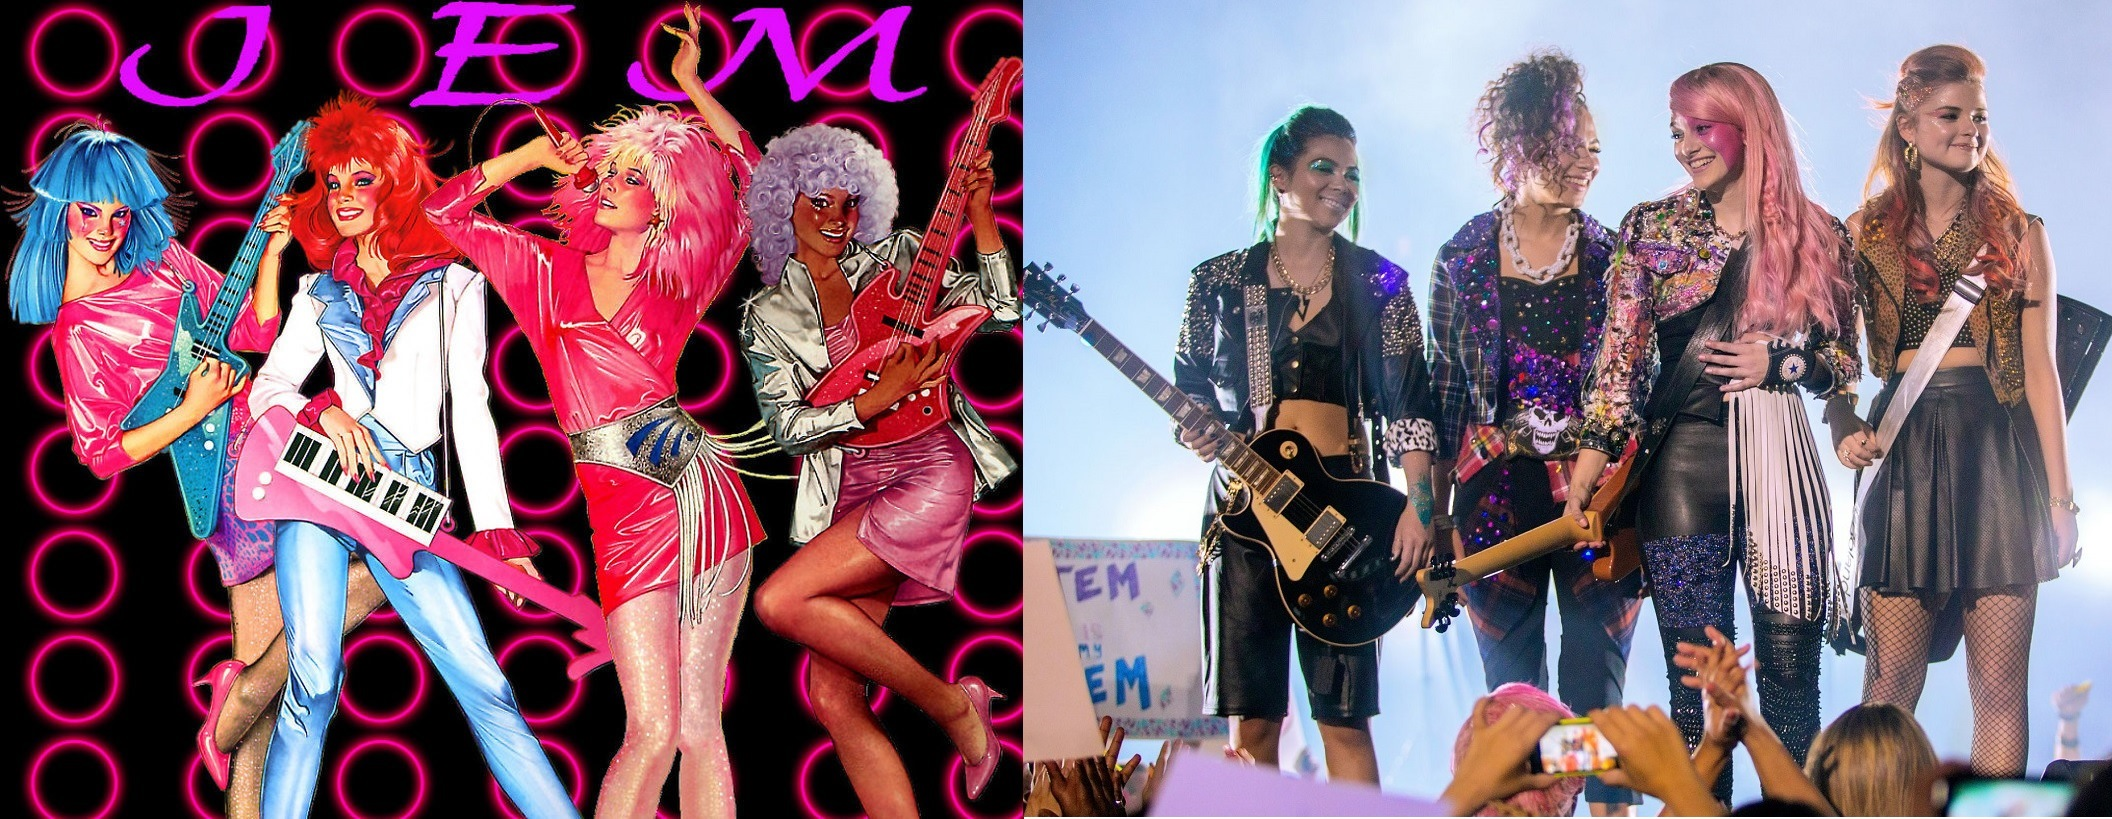 Jem and the Holograms animated vs live-action